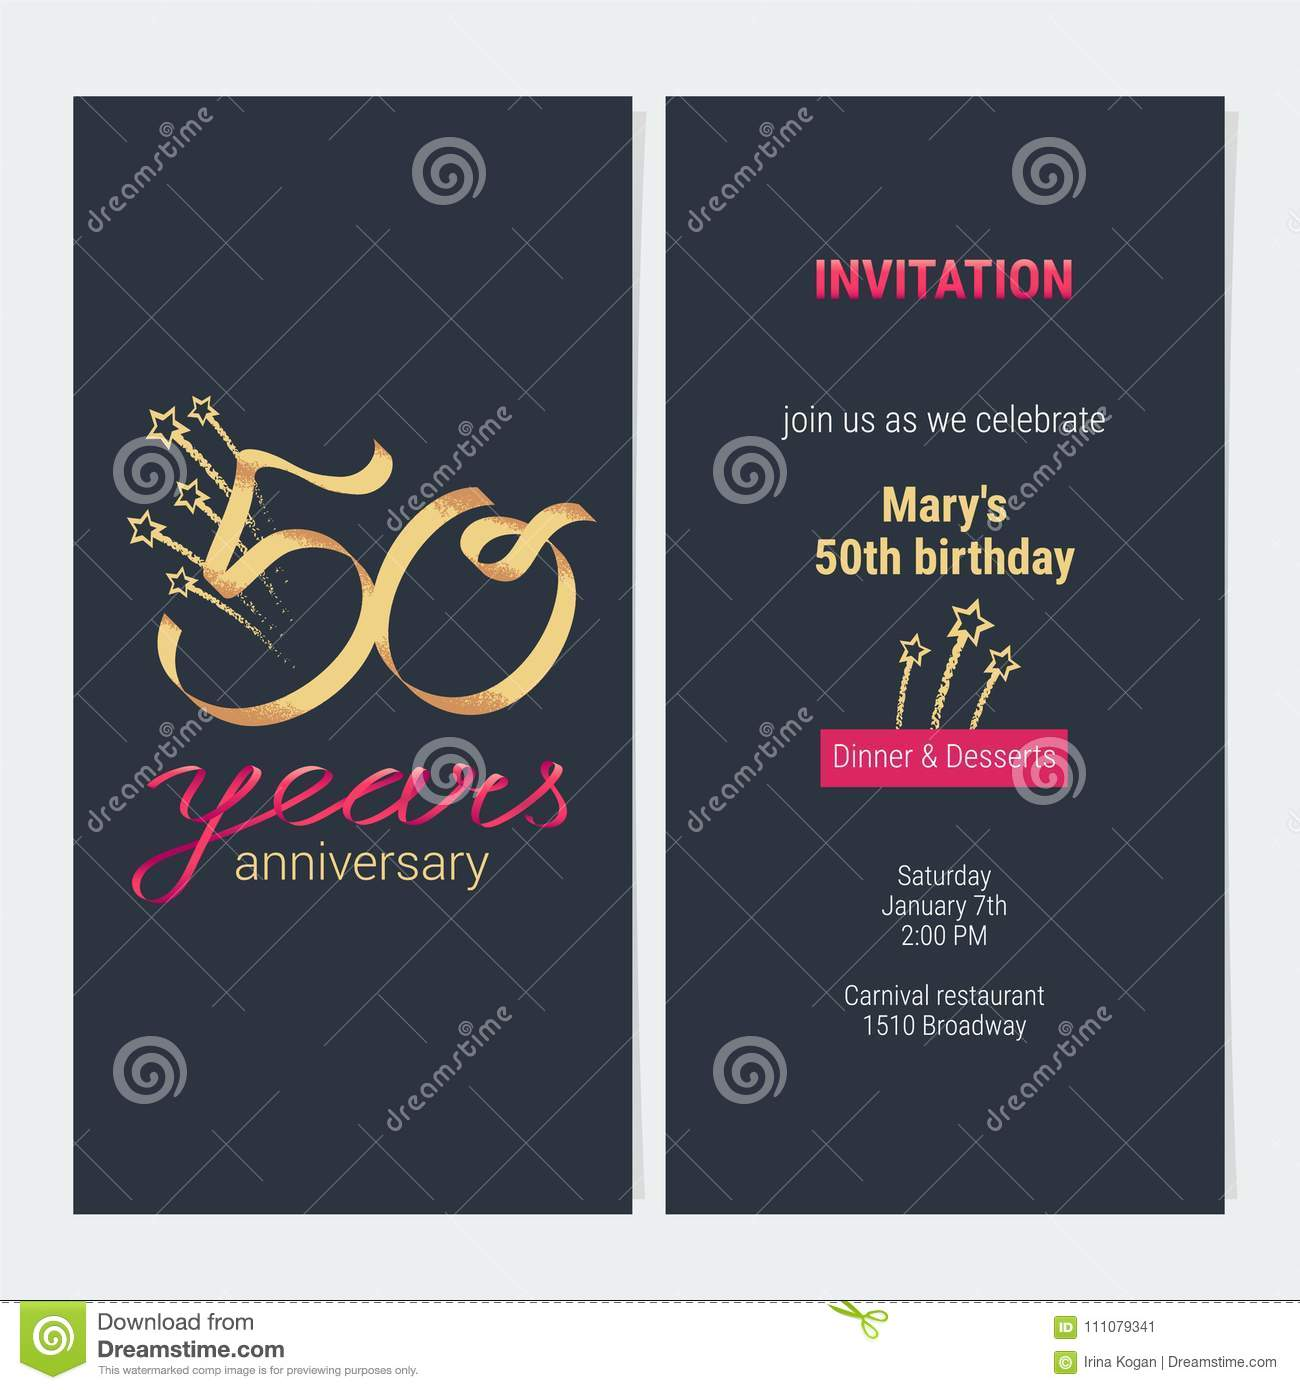 50 Years Anniversary Invitation To Celebrate Vector Illustration Design Template Element With Golden Number And Text For 50th Birthday Card Party Invite